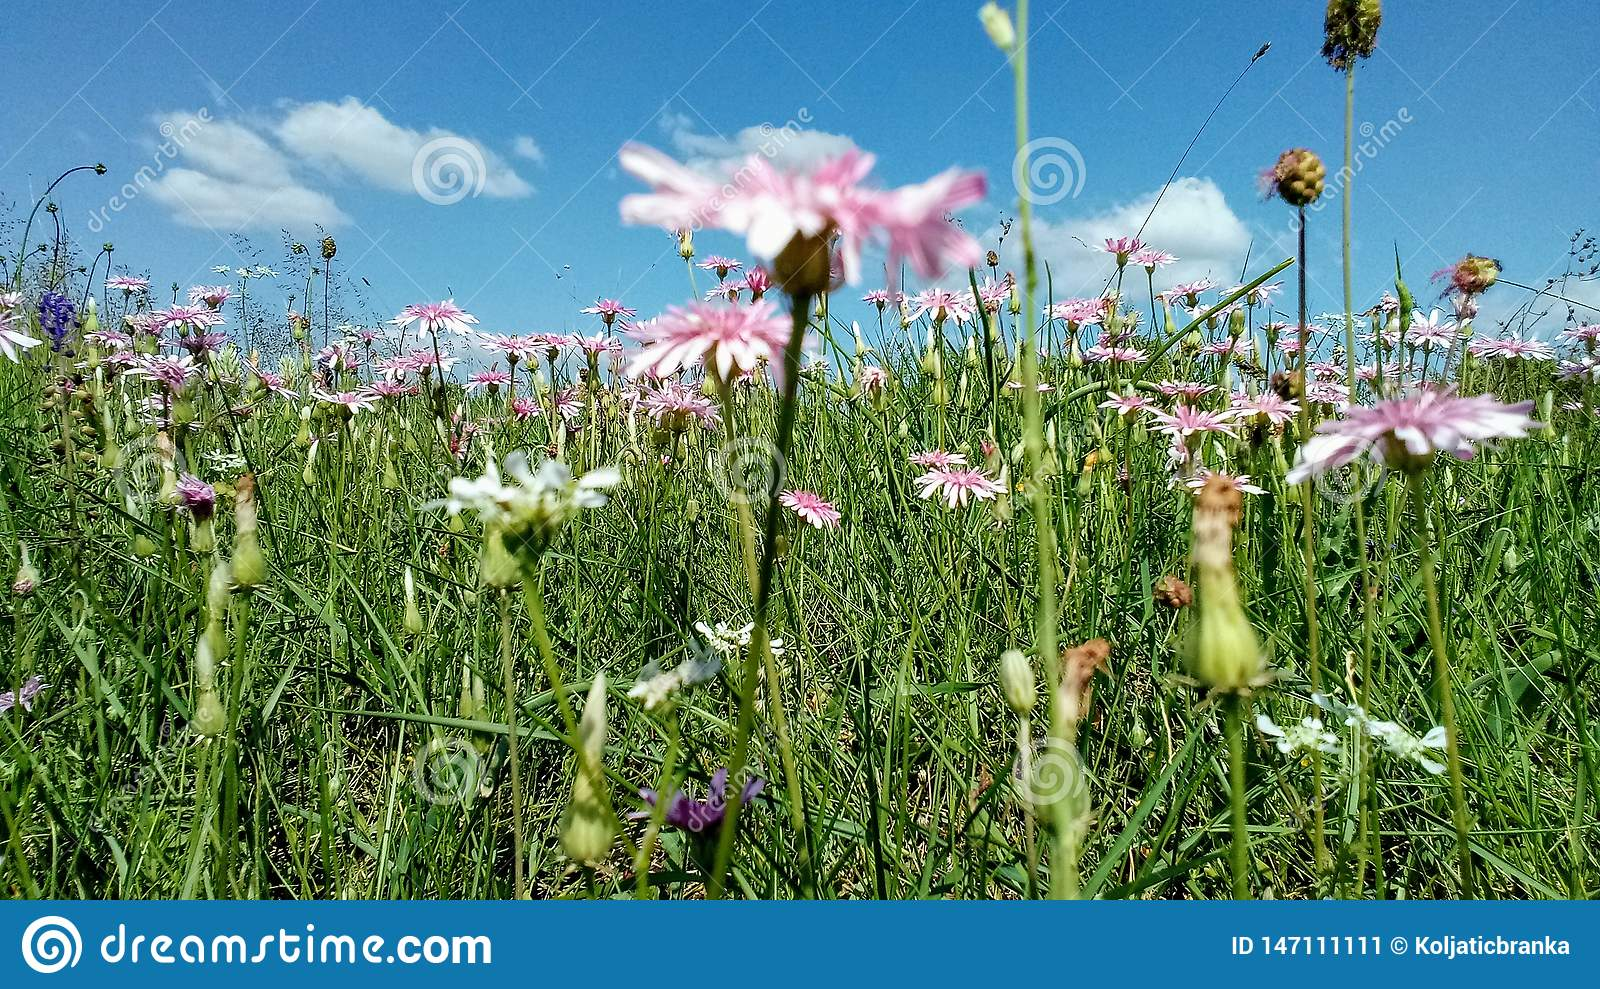 Spring grass background with flowers and grass.